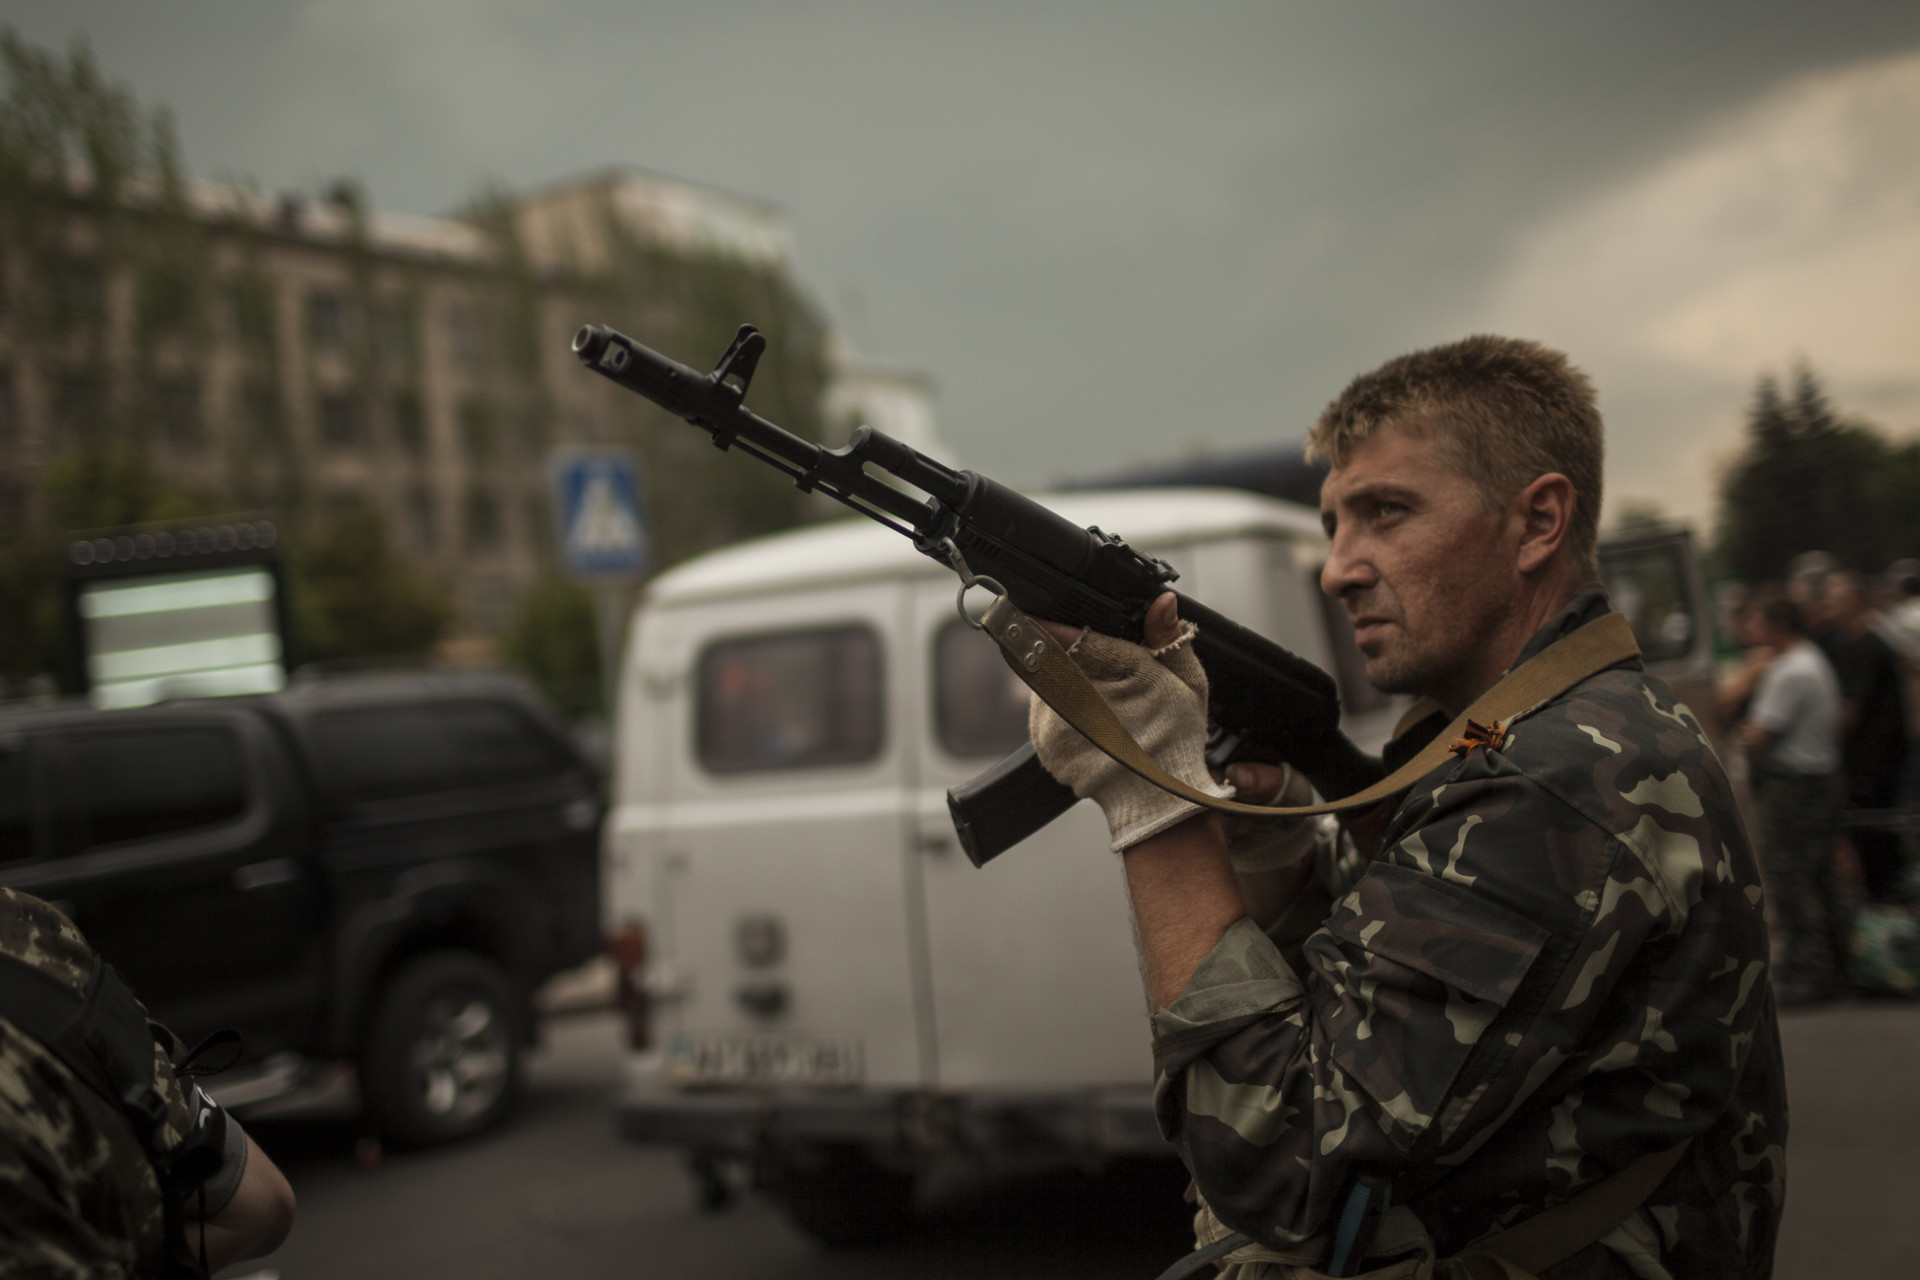 A militiamen aims his gun at the Rada during its violent takeover by the Vostok battalion on the 29th of May, following allegations of looting by activists of the Donetsk People's Republic.